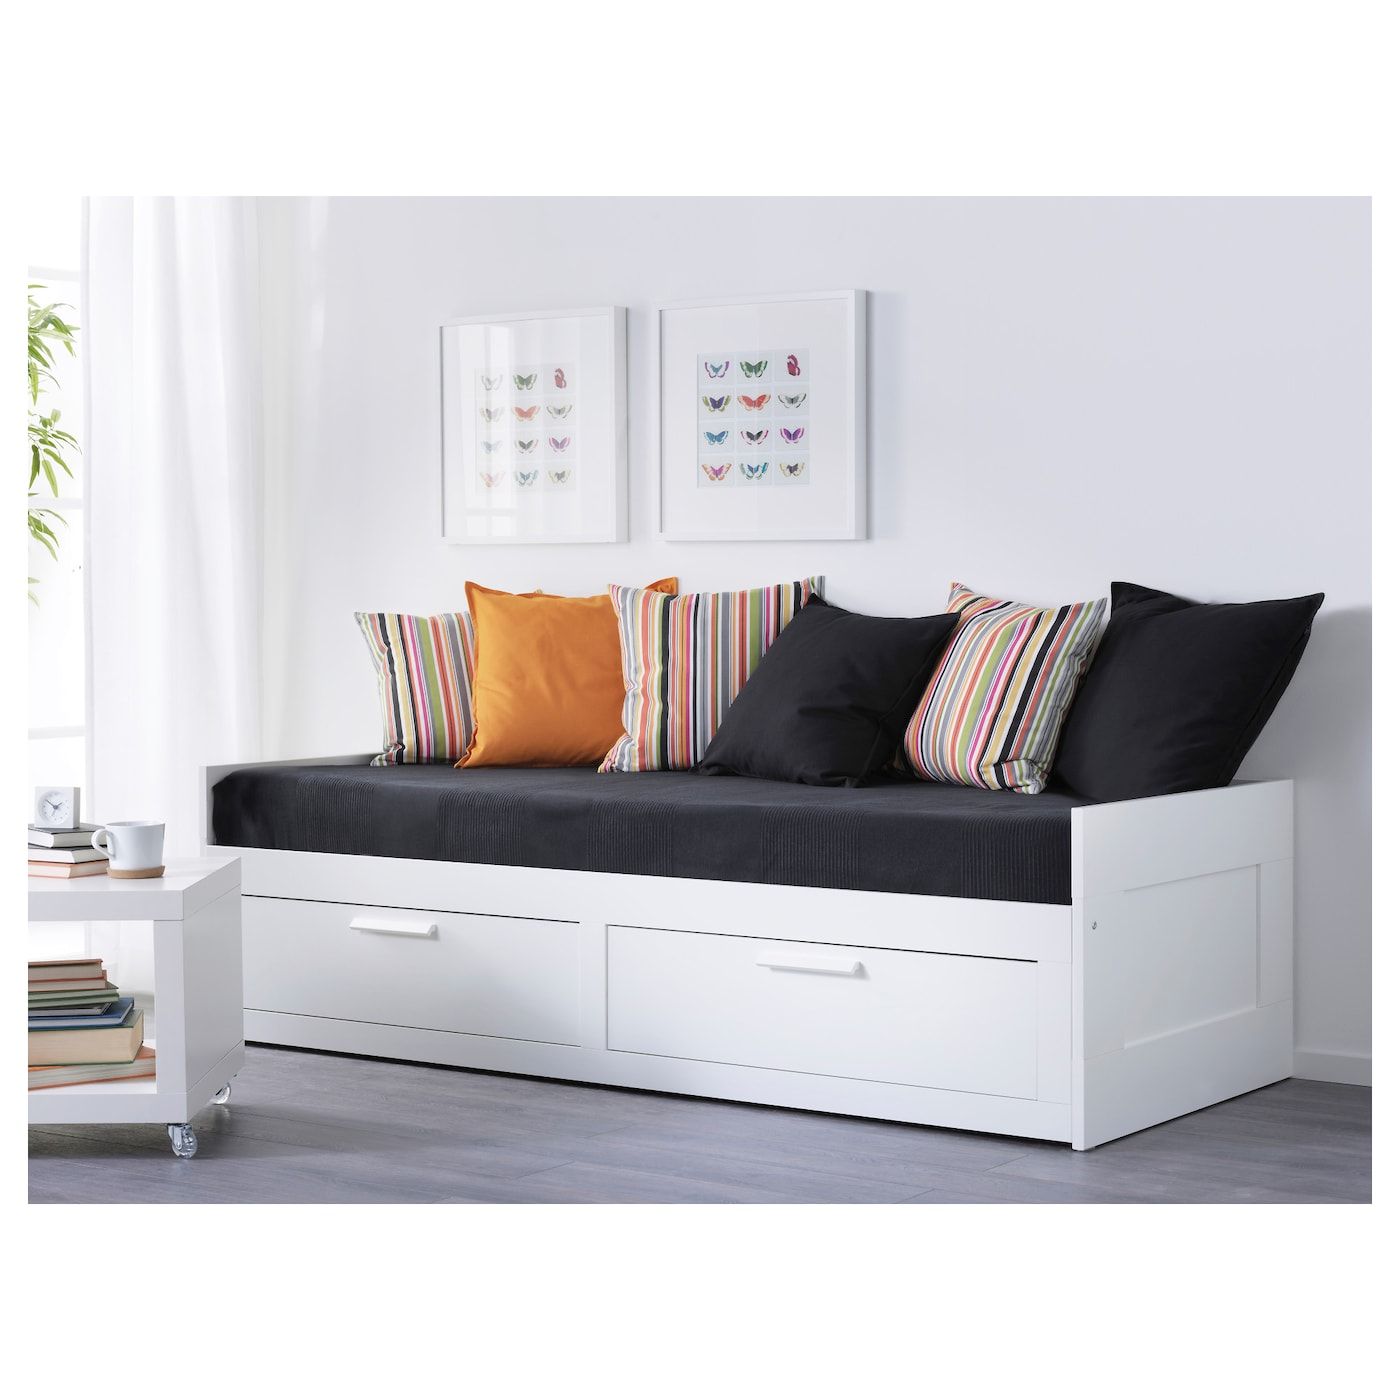 Brimnes day bed w 2 drawers 2 mattresses white moshult firm 80x200 cm ikea Ikea divan beds